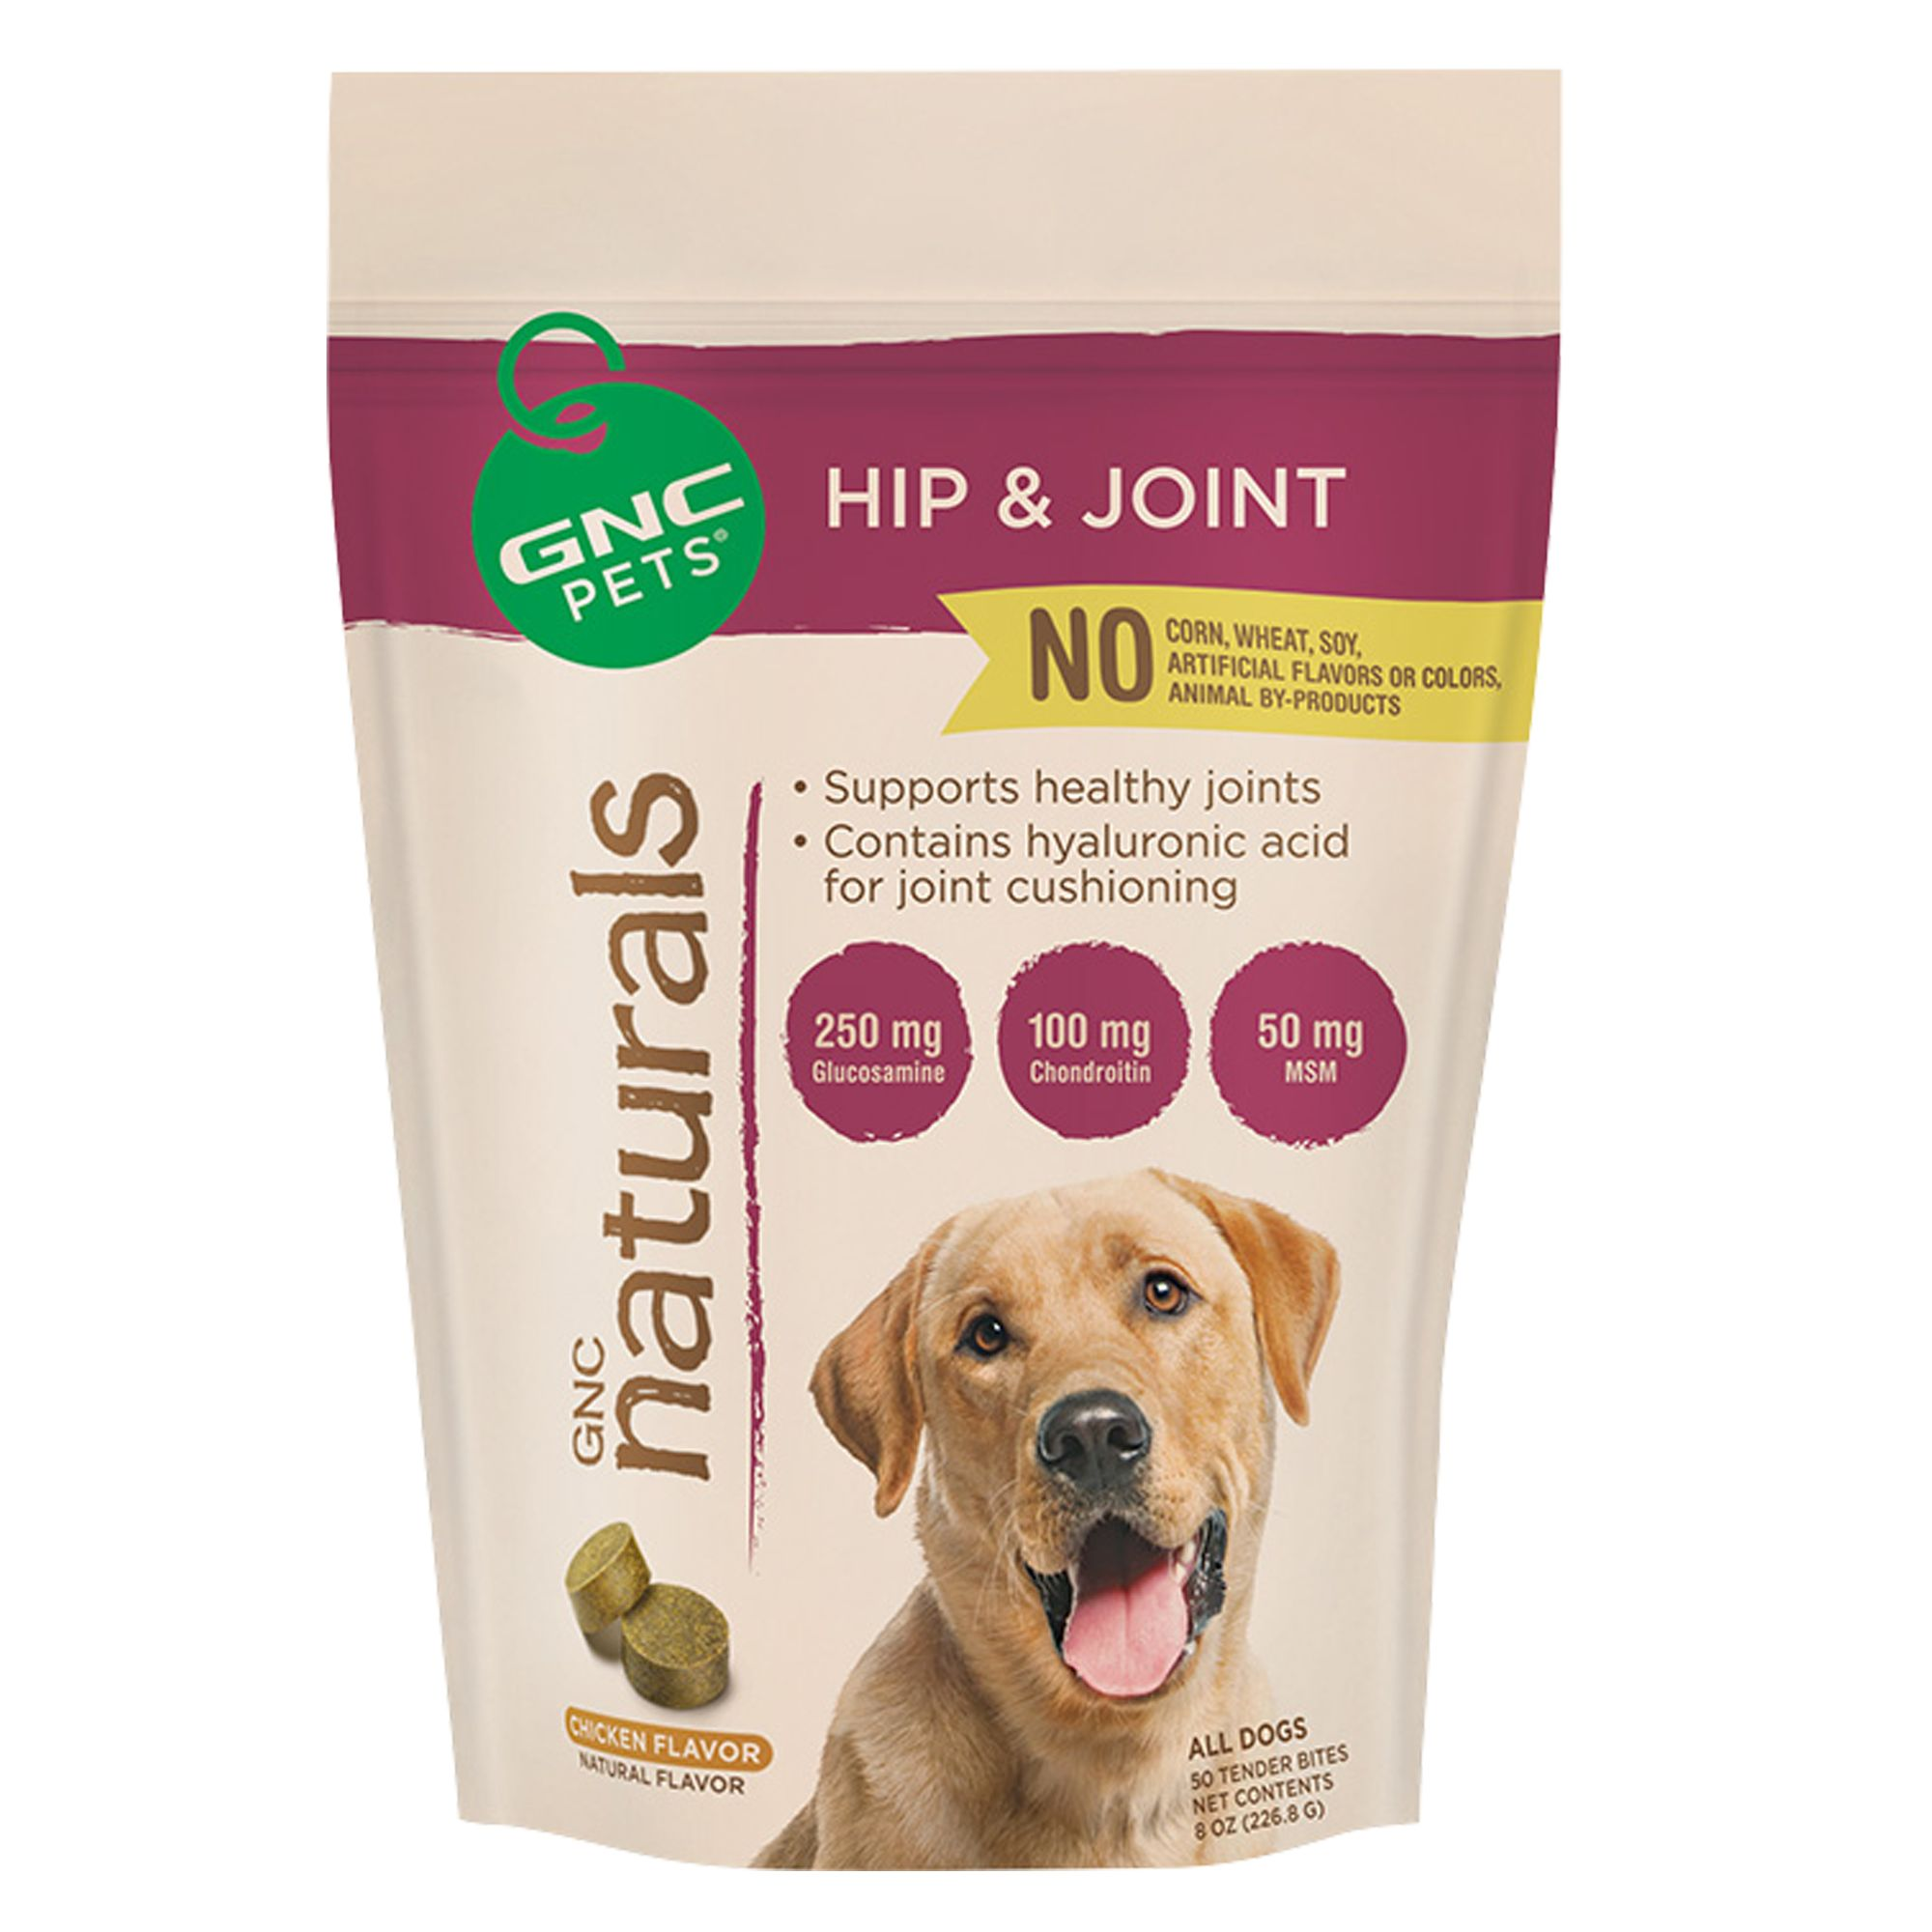 GNC Pets Hip and Joint Dog Supplement size: 8 Fl Oz 5184263